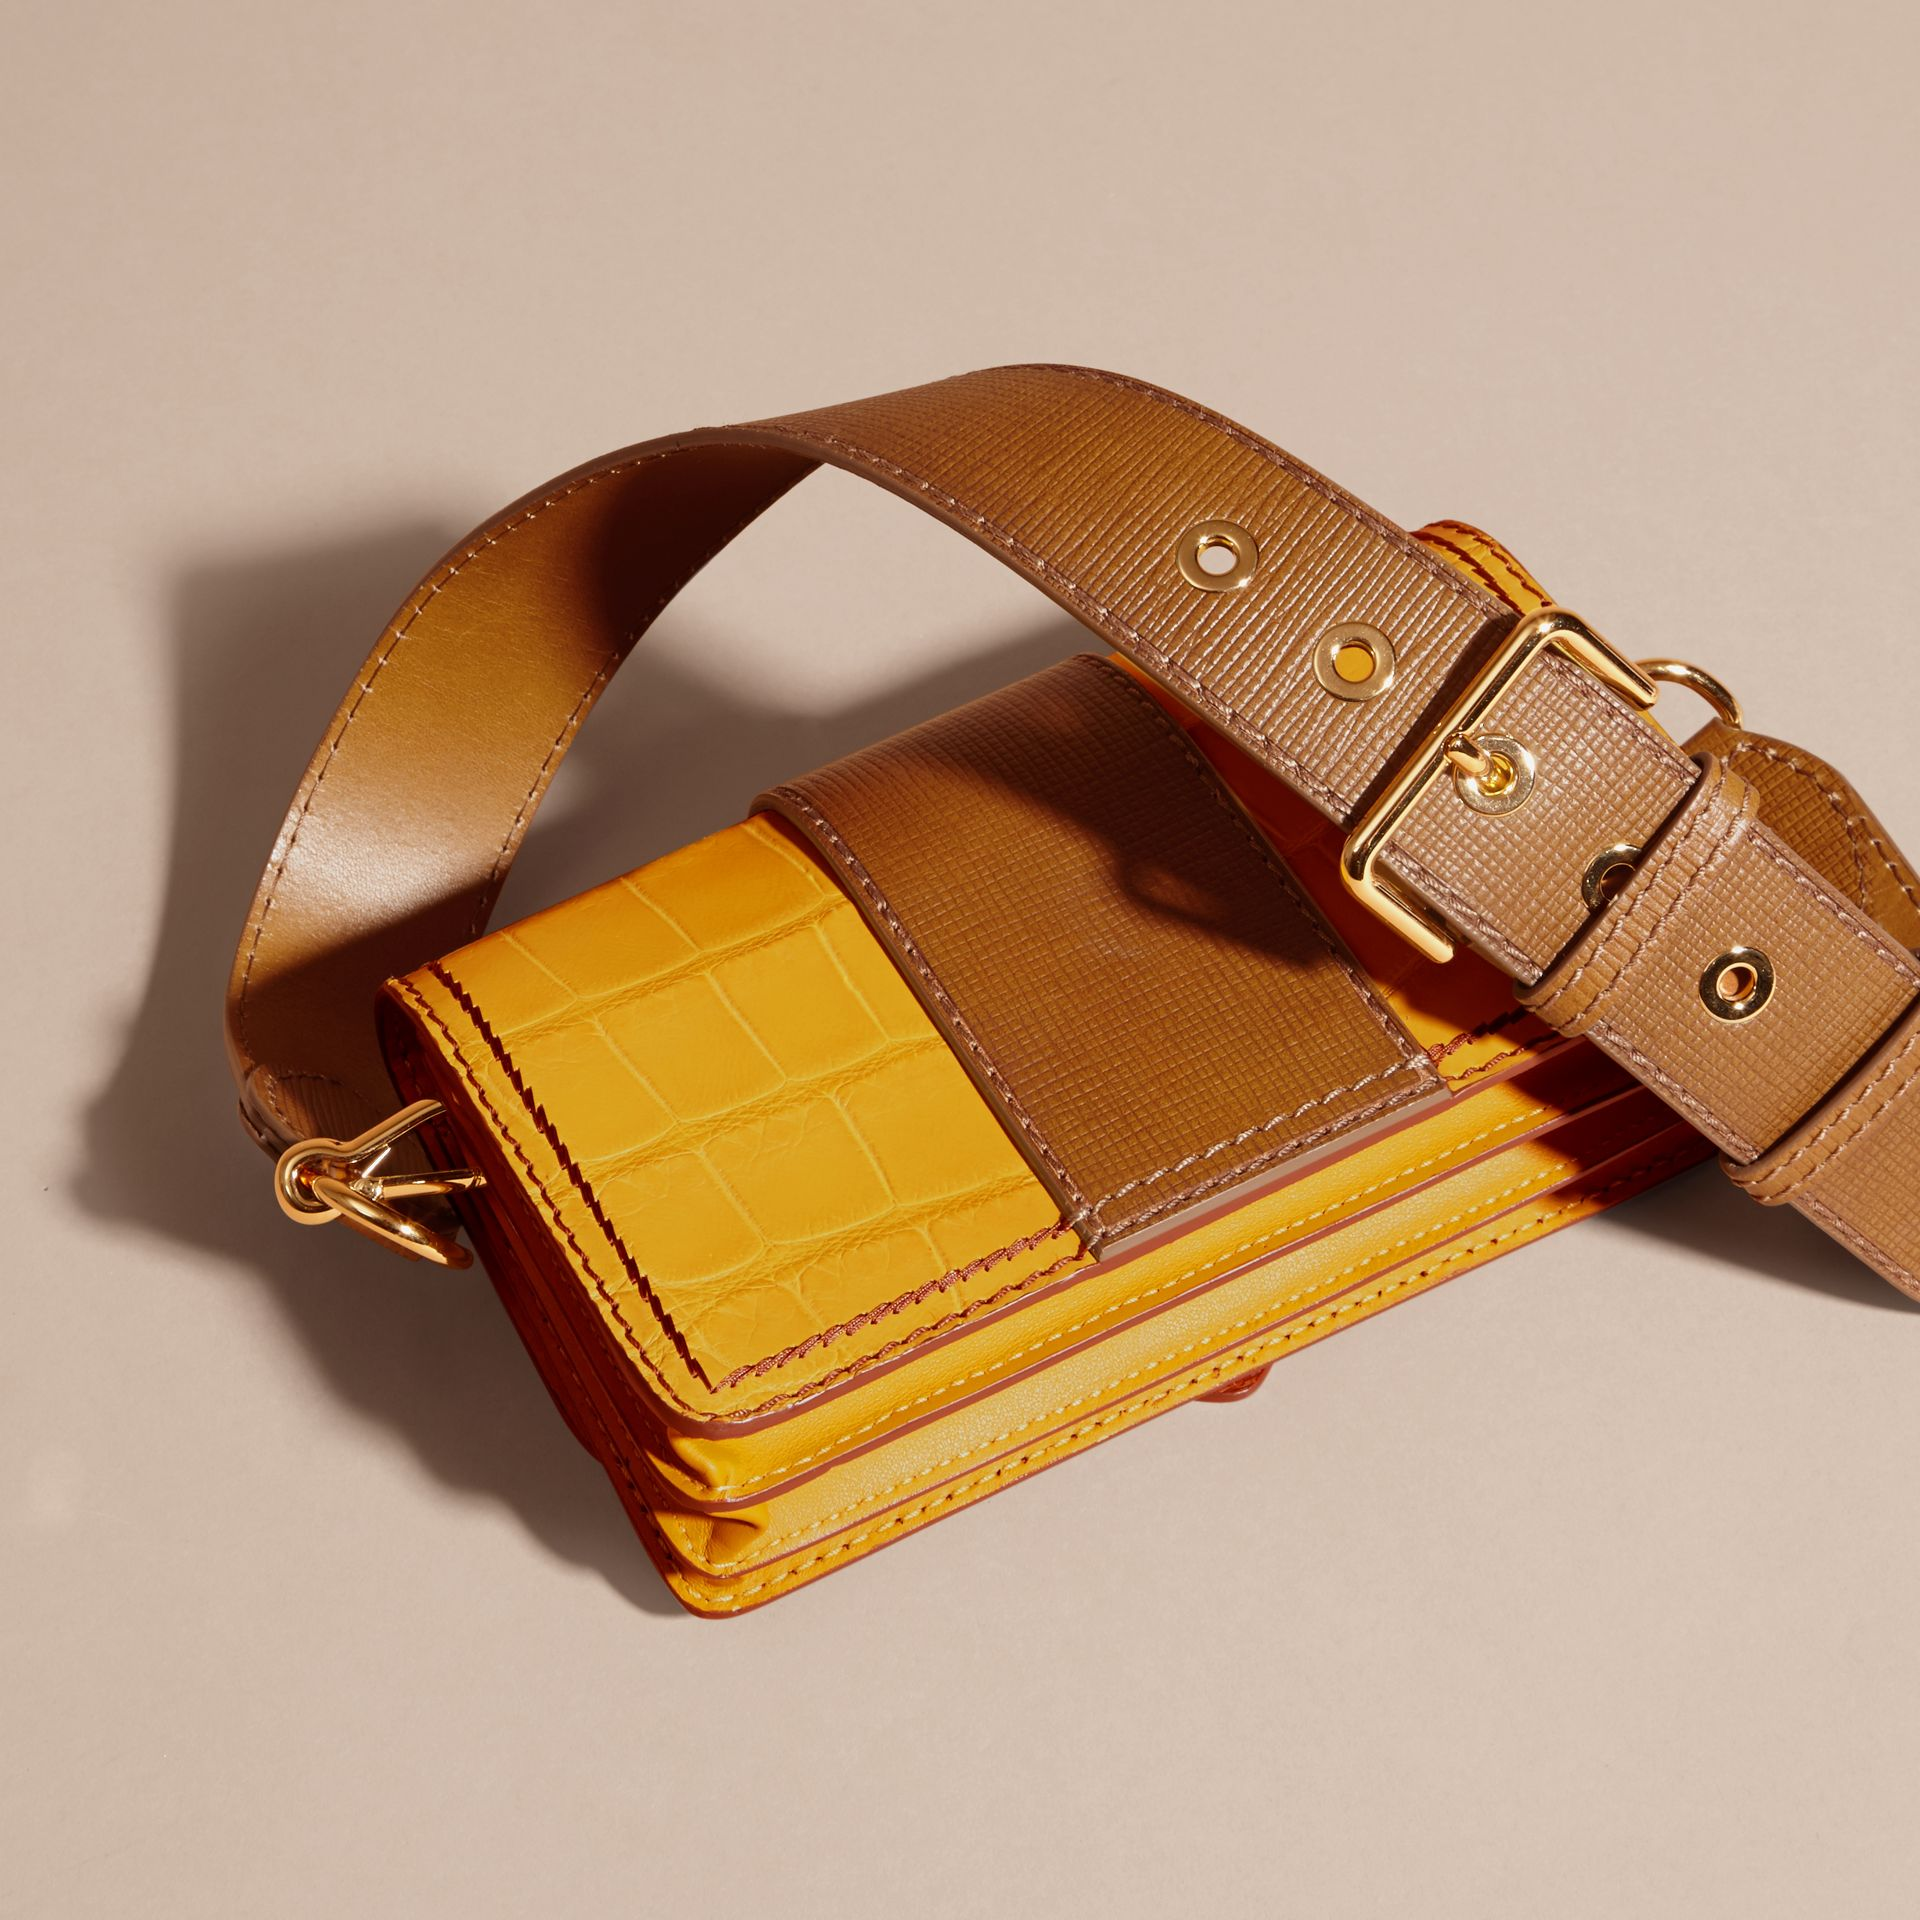 Citrus yellow / tan The Small Buckle Bag in Alligator and Leather Citrus Yellow / Tan - gallery image 5